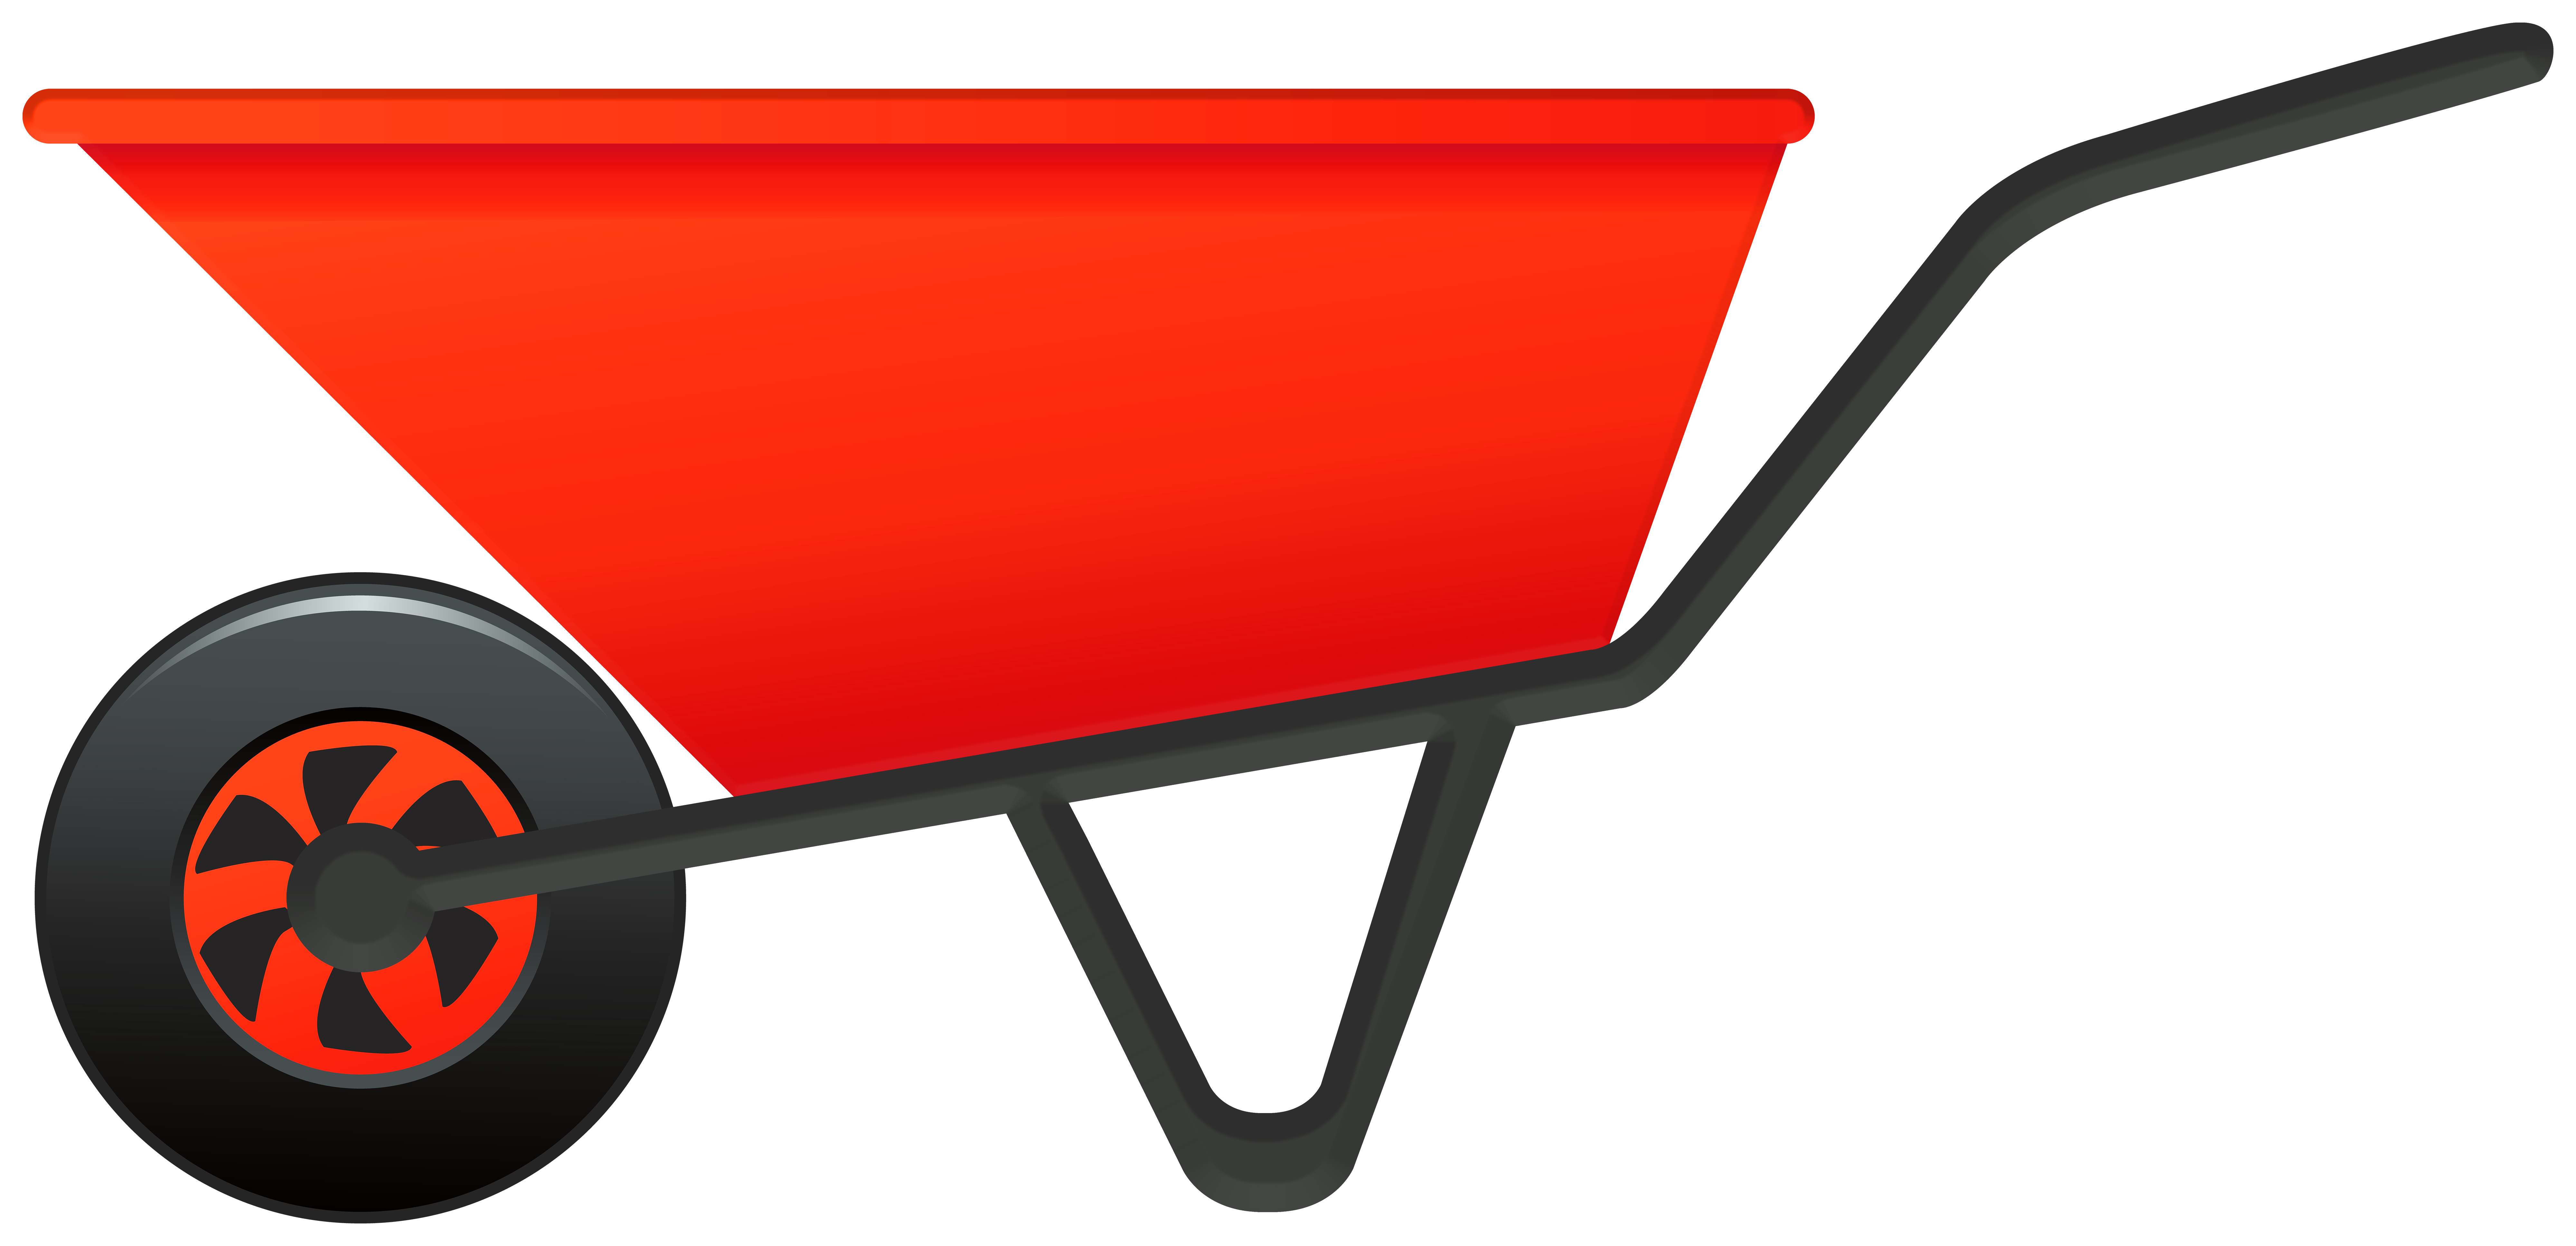 graphic freeuse download Wheelbarrow clipart. Red png gallery yopriceville